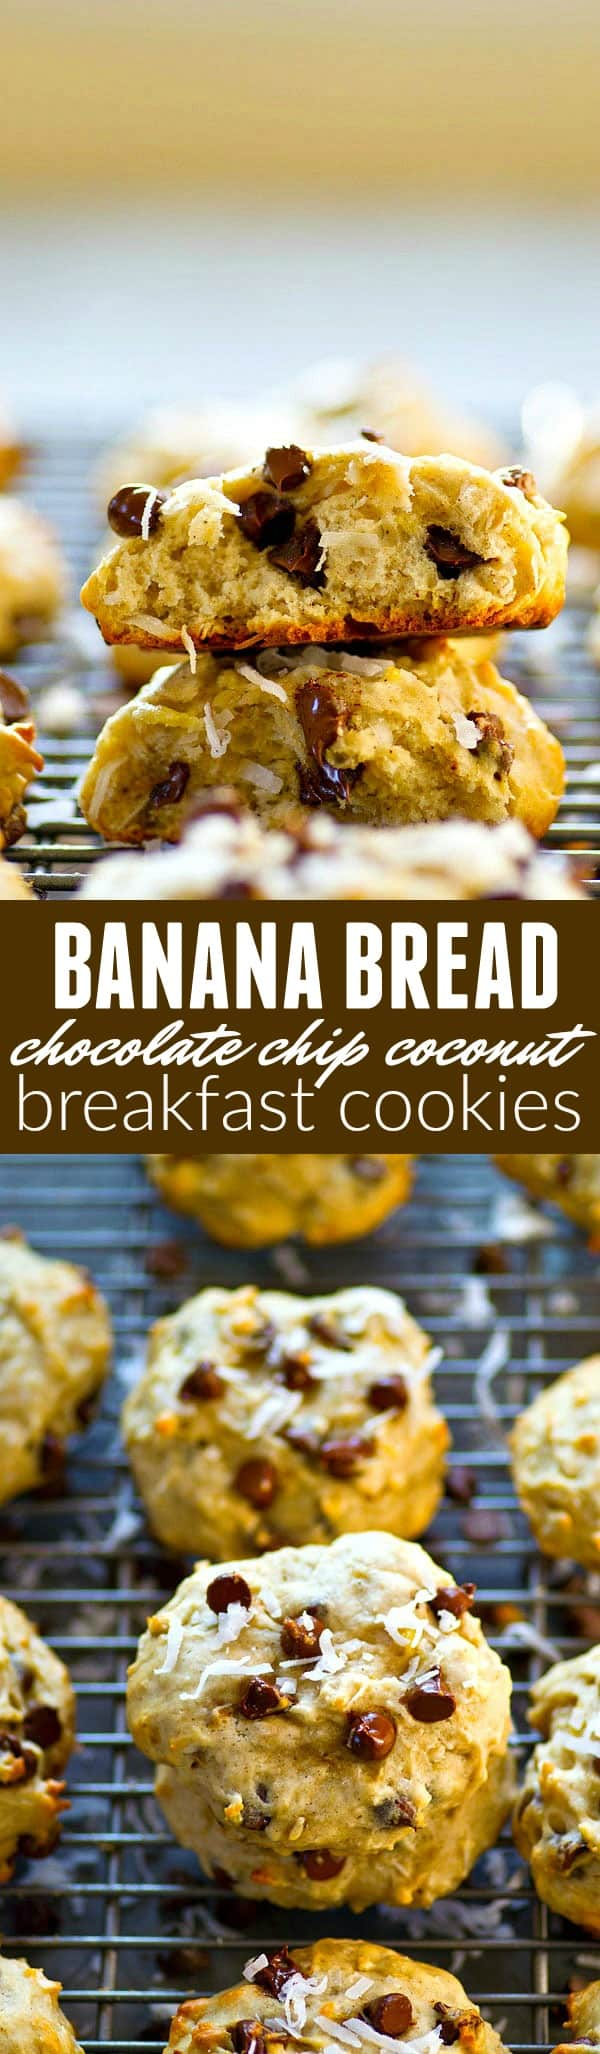 Soft, cake-like banana bread chocolate chip coconut breakfast cookies have a texture that's a dead ringer for banana bread all rolled up into one incredible breakfast cookie!